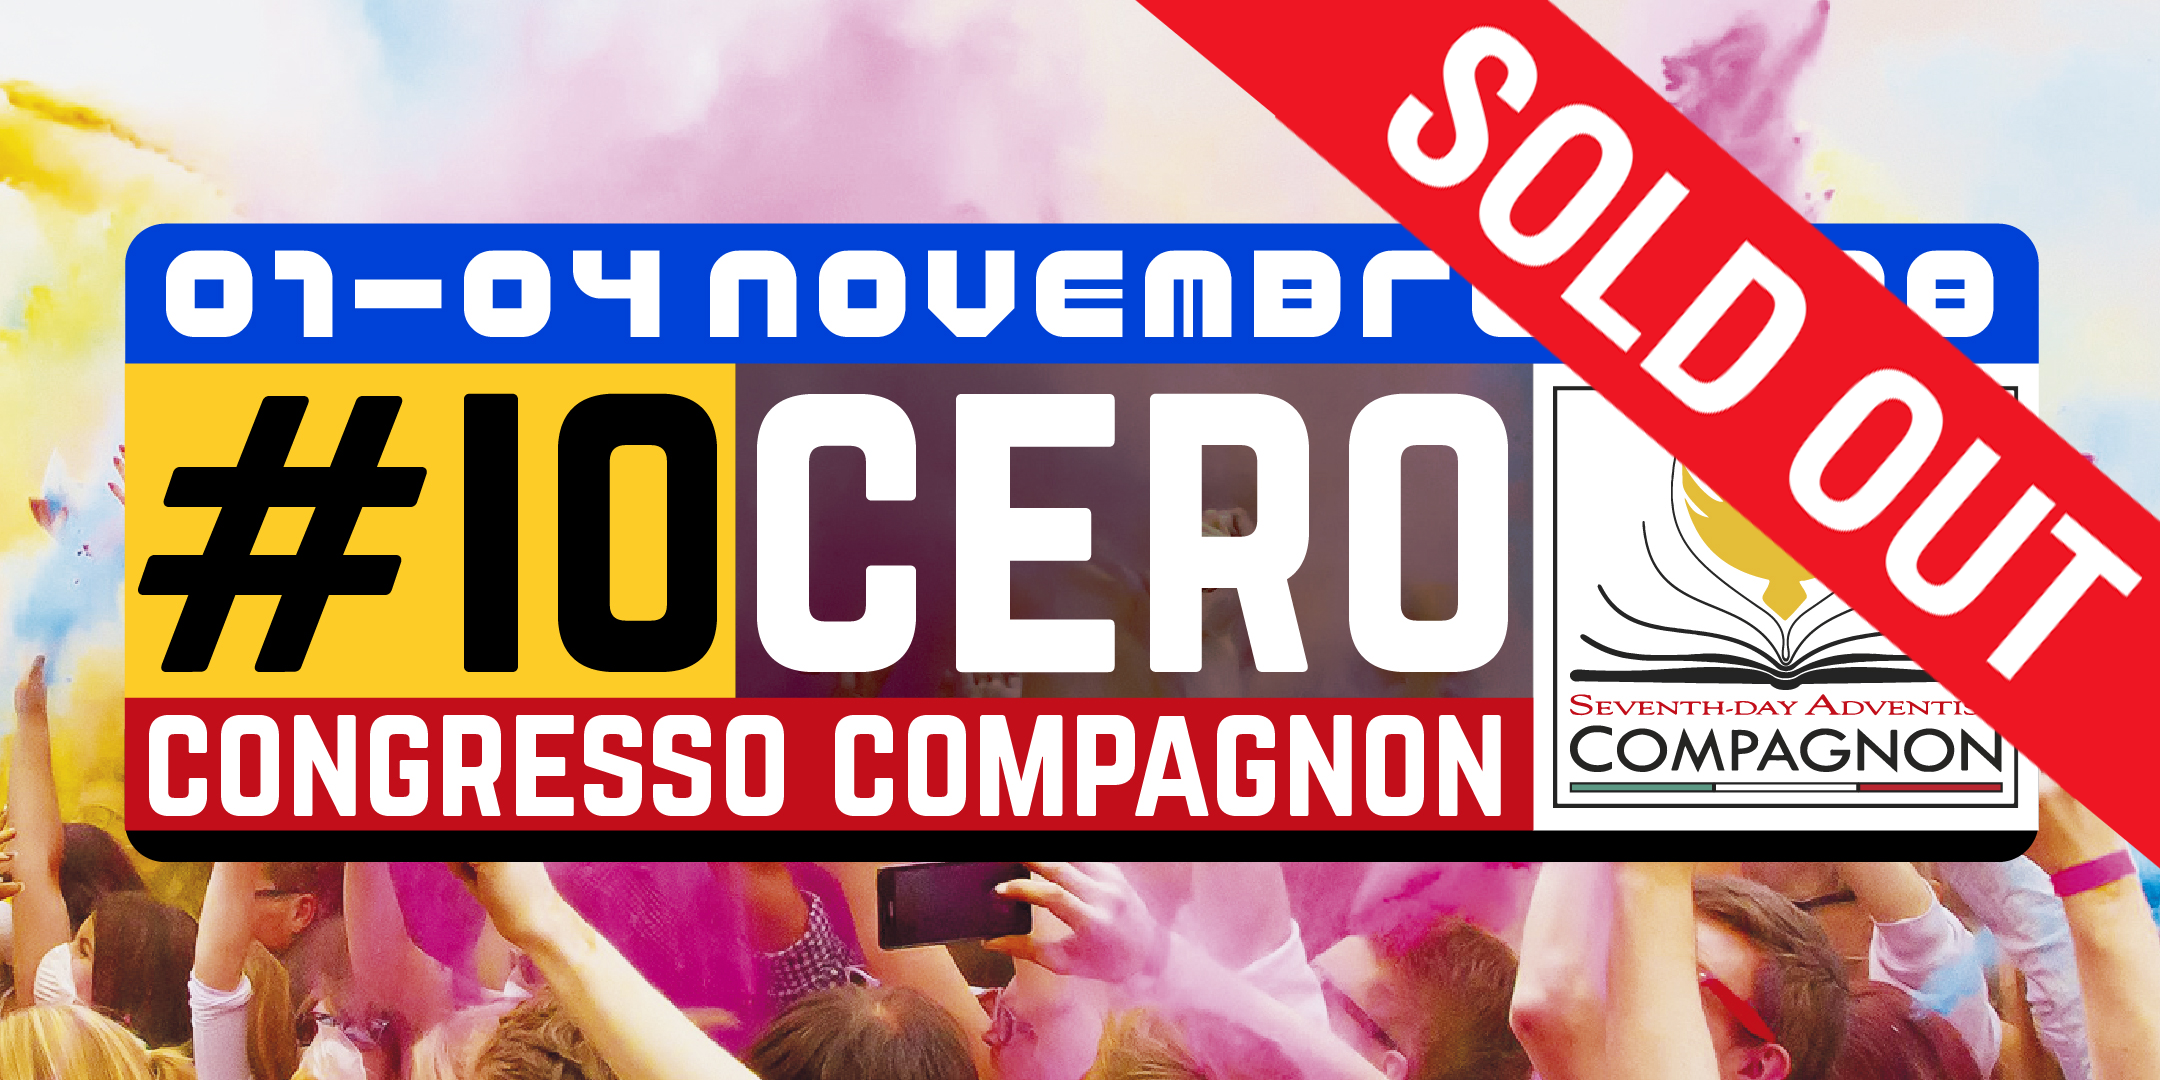 Congresso Compagnon 2018 SOLD OUT